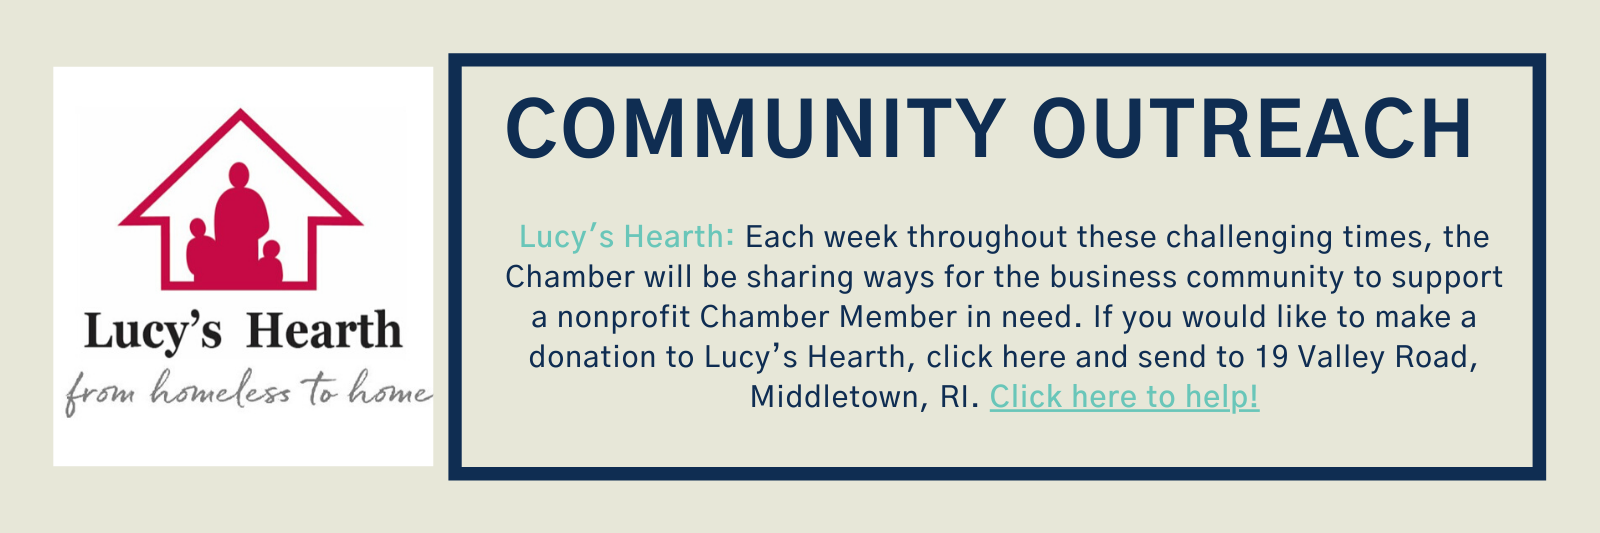 Community-Outreach---Lucy's-Hearth.png